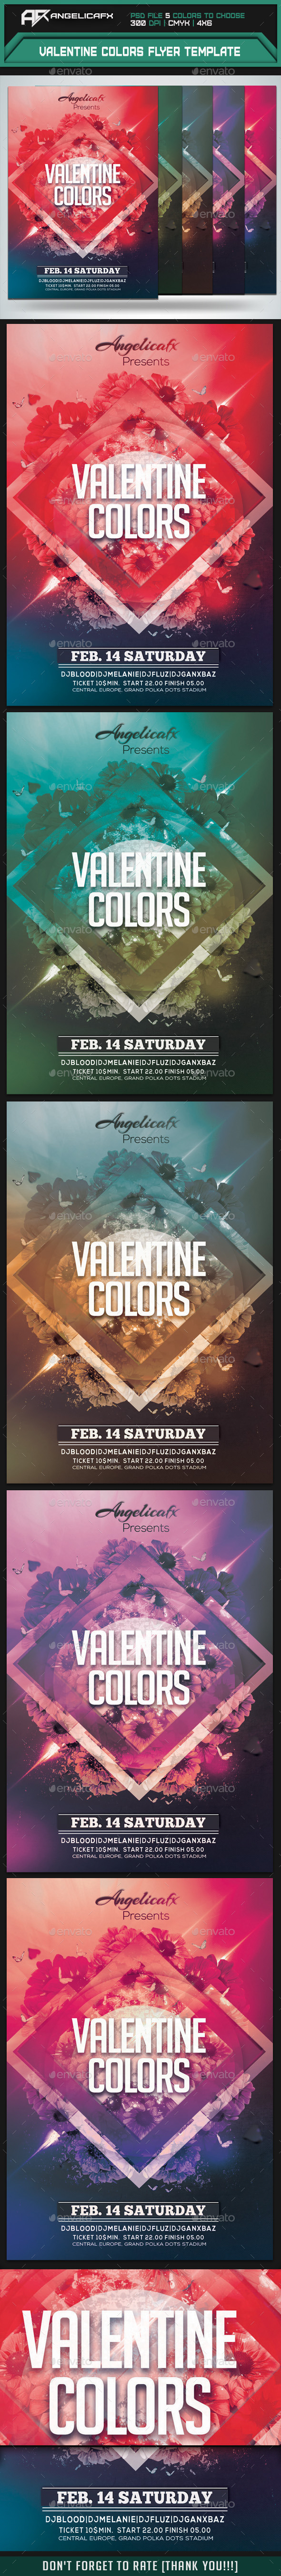 Valentine Colors Flyer Template - Clubs & Parties Events